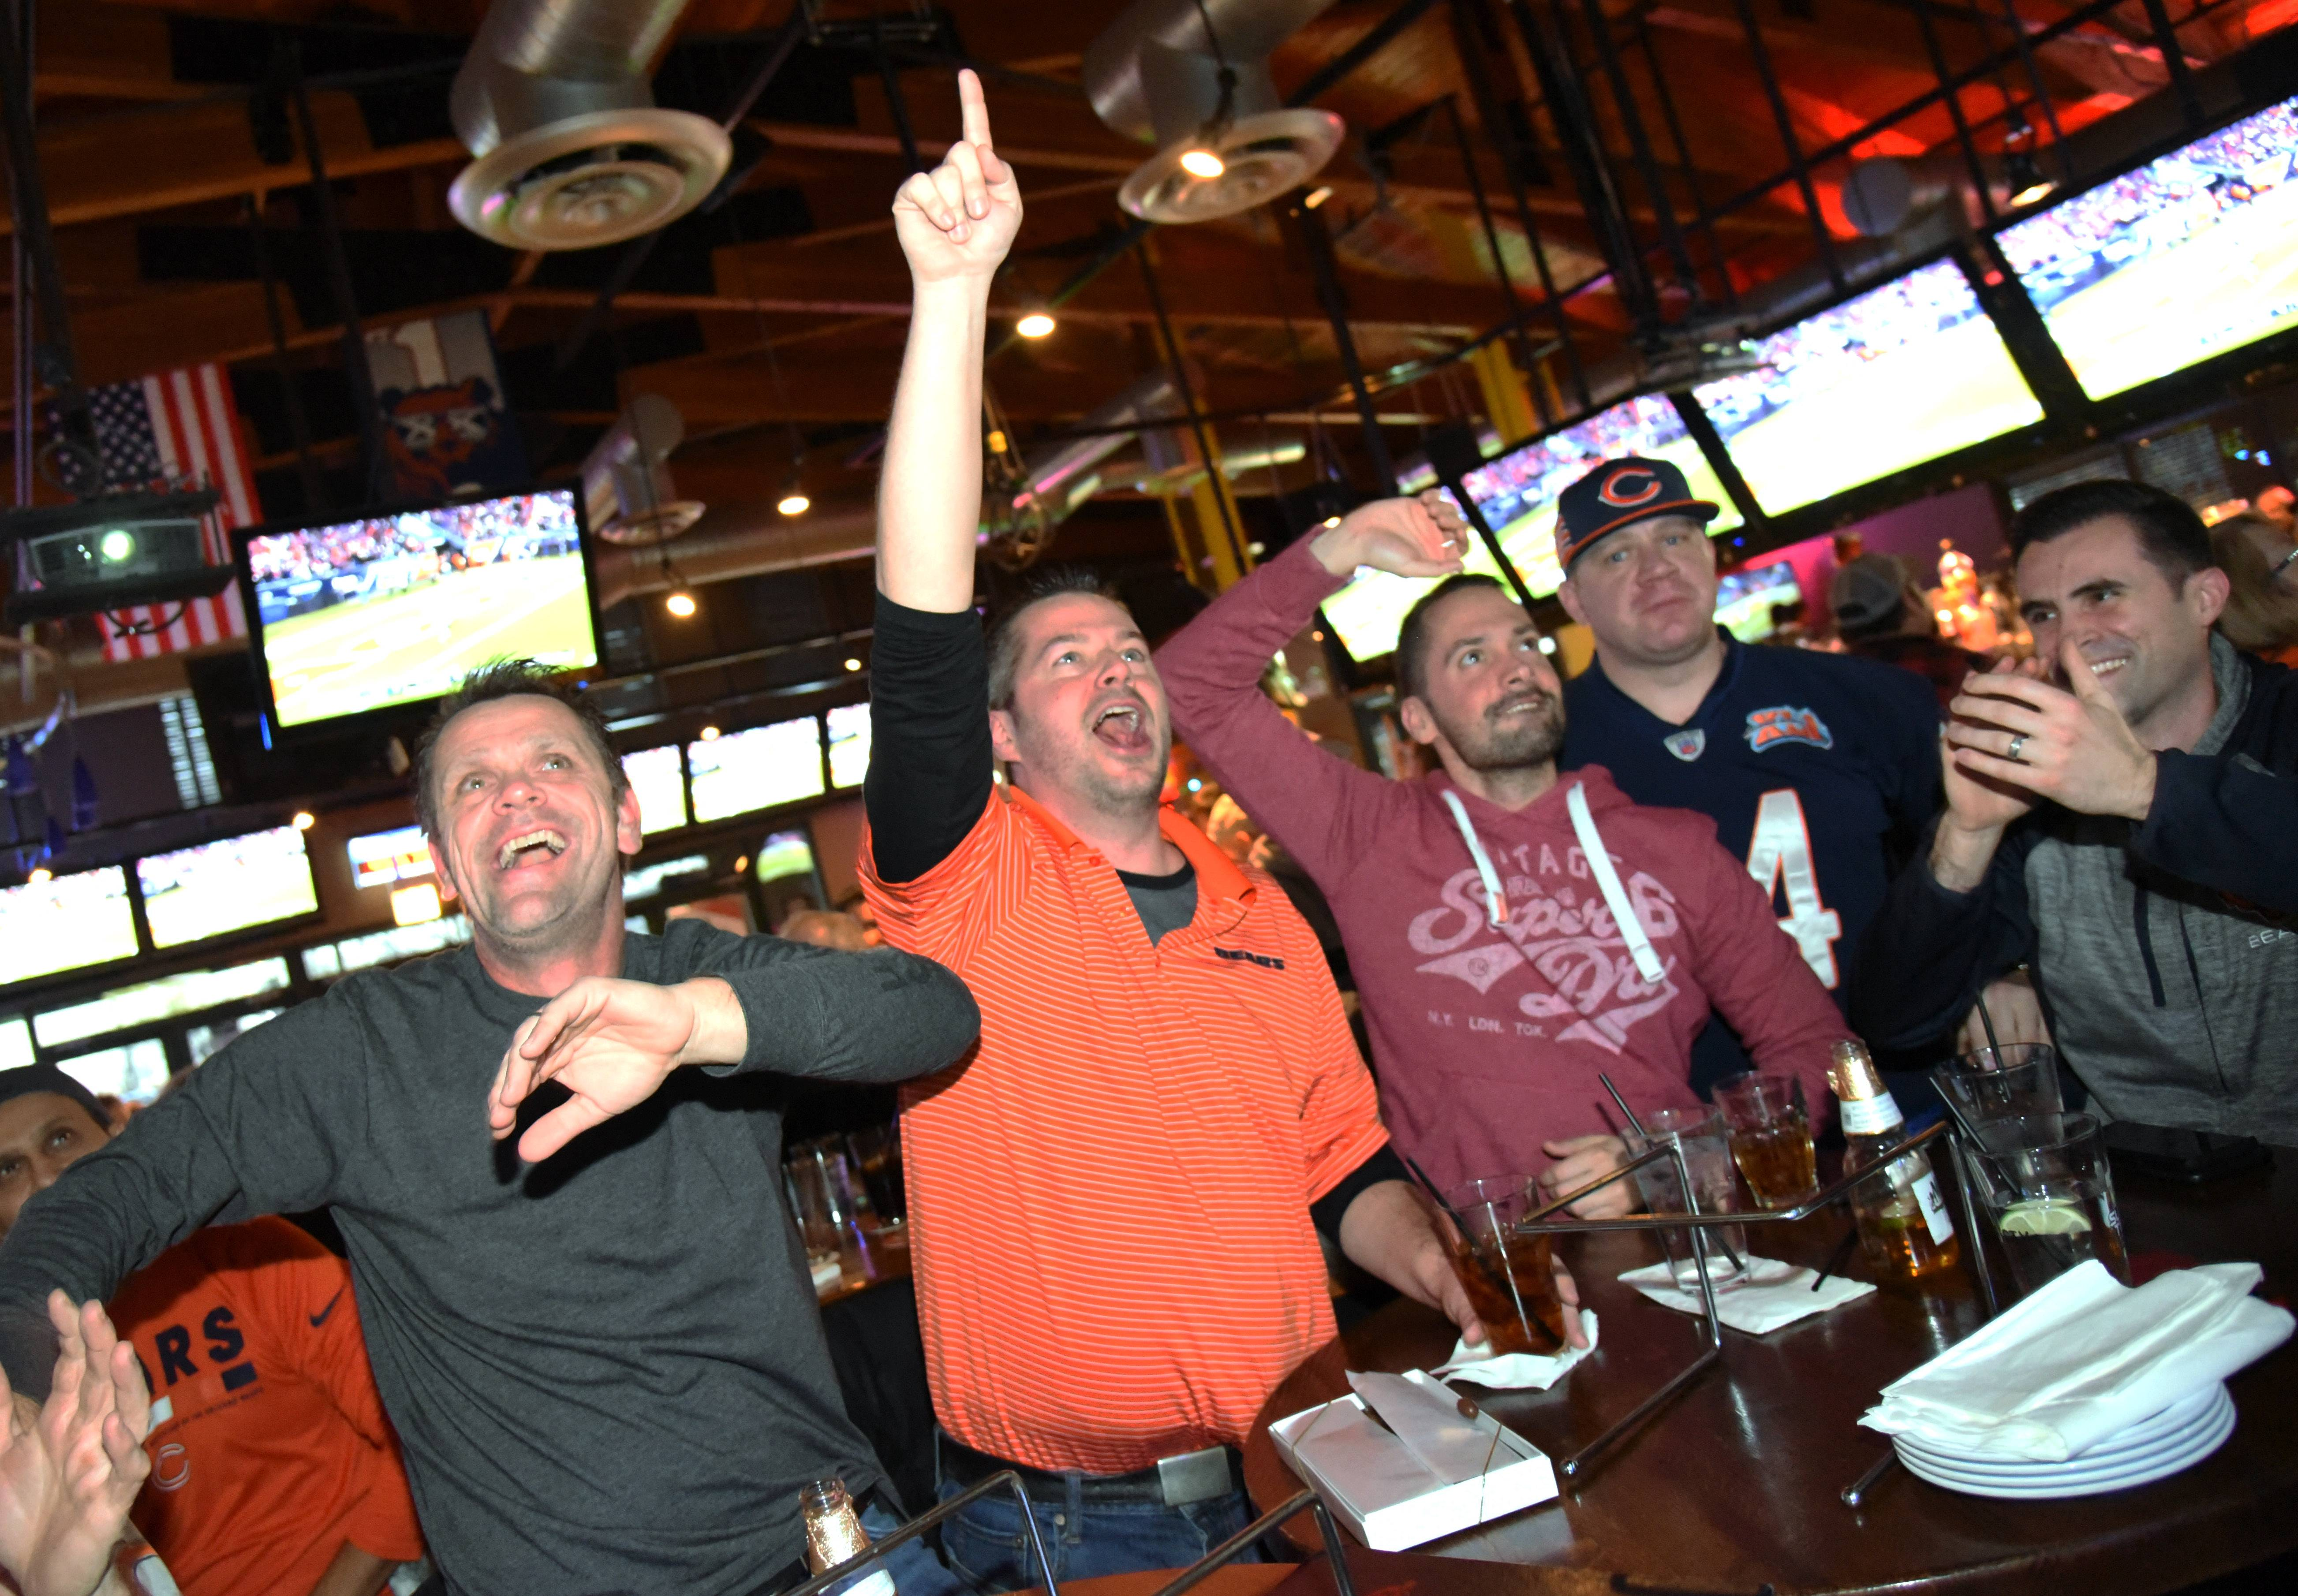 Bears fans disappointed by Sunday's outcome yet hopeful for future